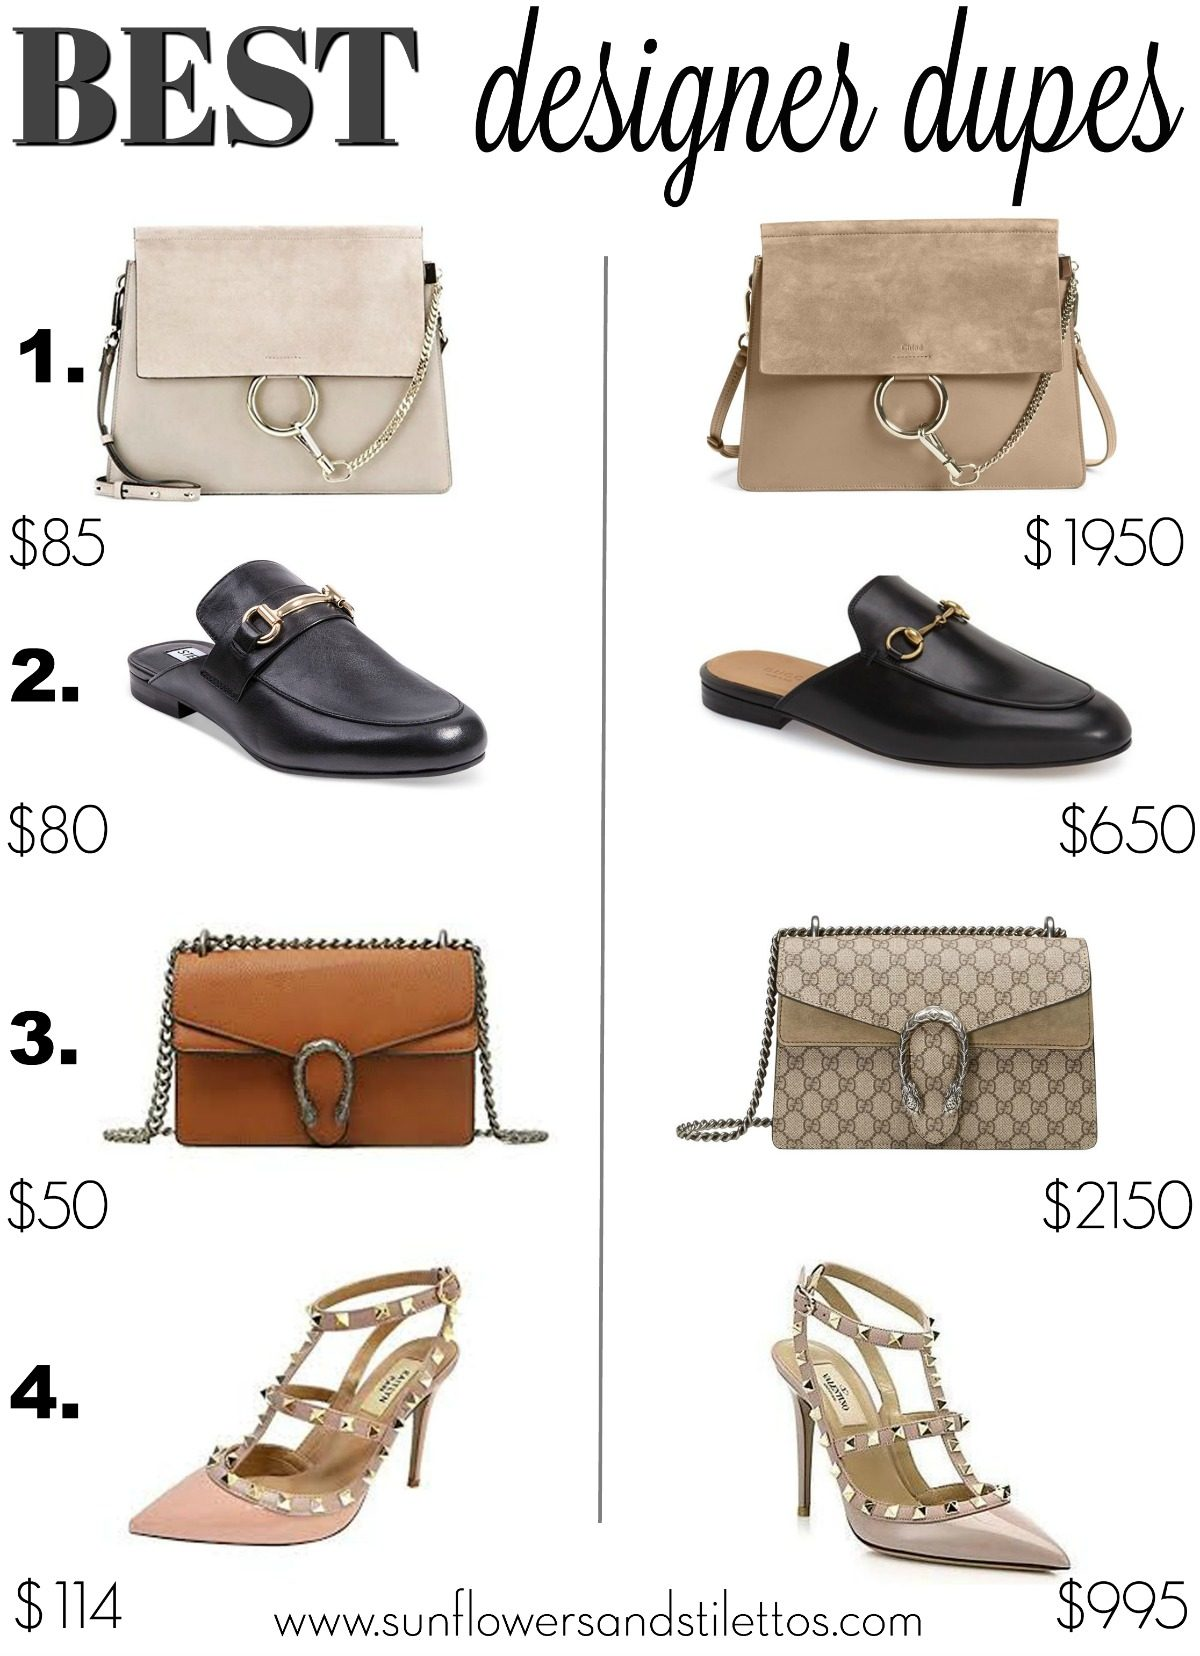 Best Designer Bags, Best Designer Shoes, Rockstud heels, Chloe Bag, Gucci Bag, Gucci Loafer